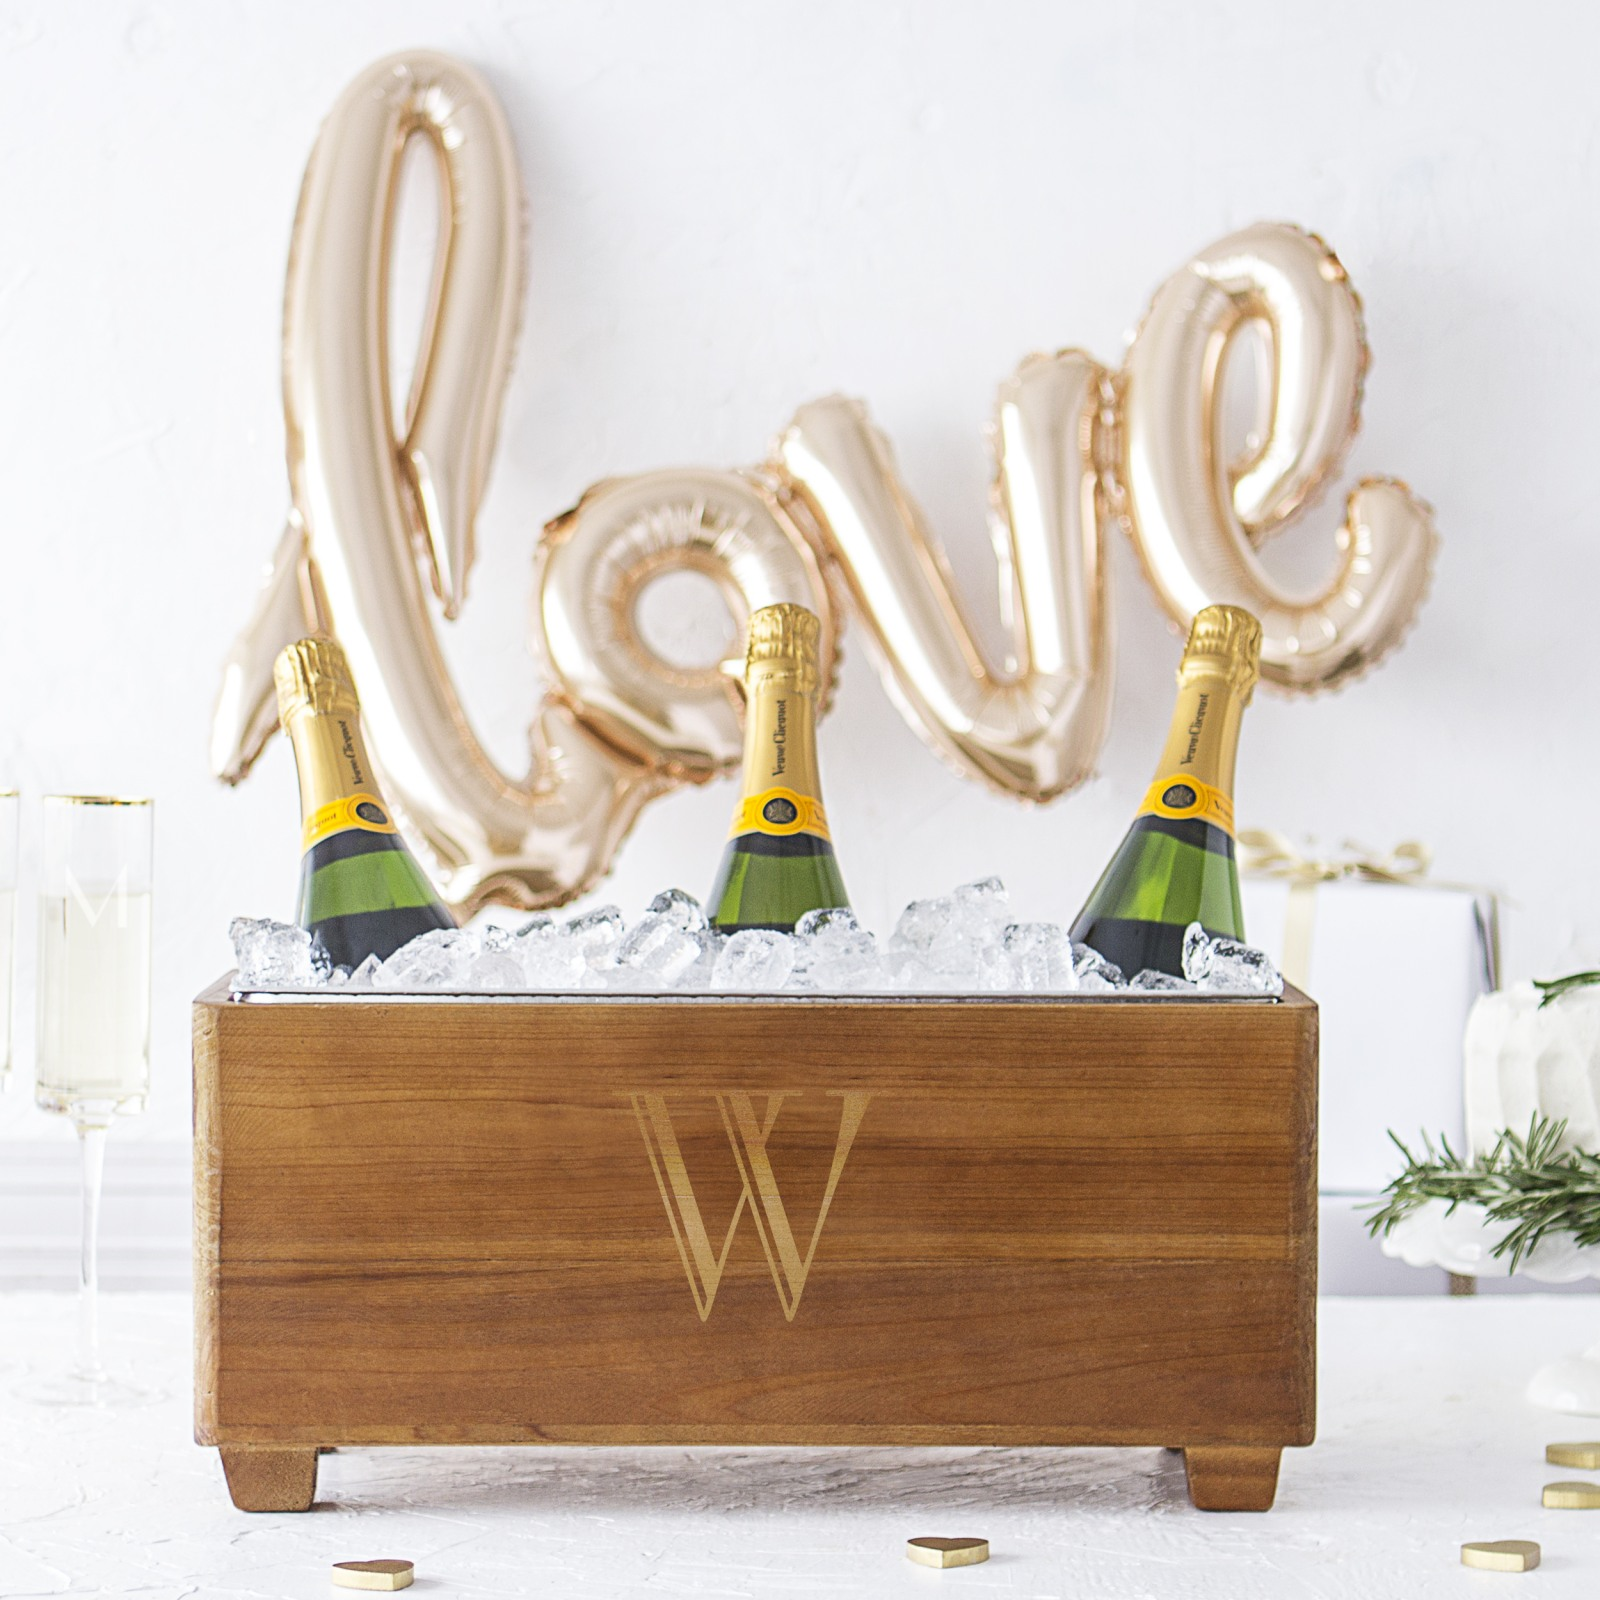 Personalized Wooden Wine Trough 8879